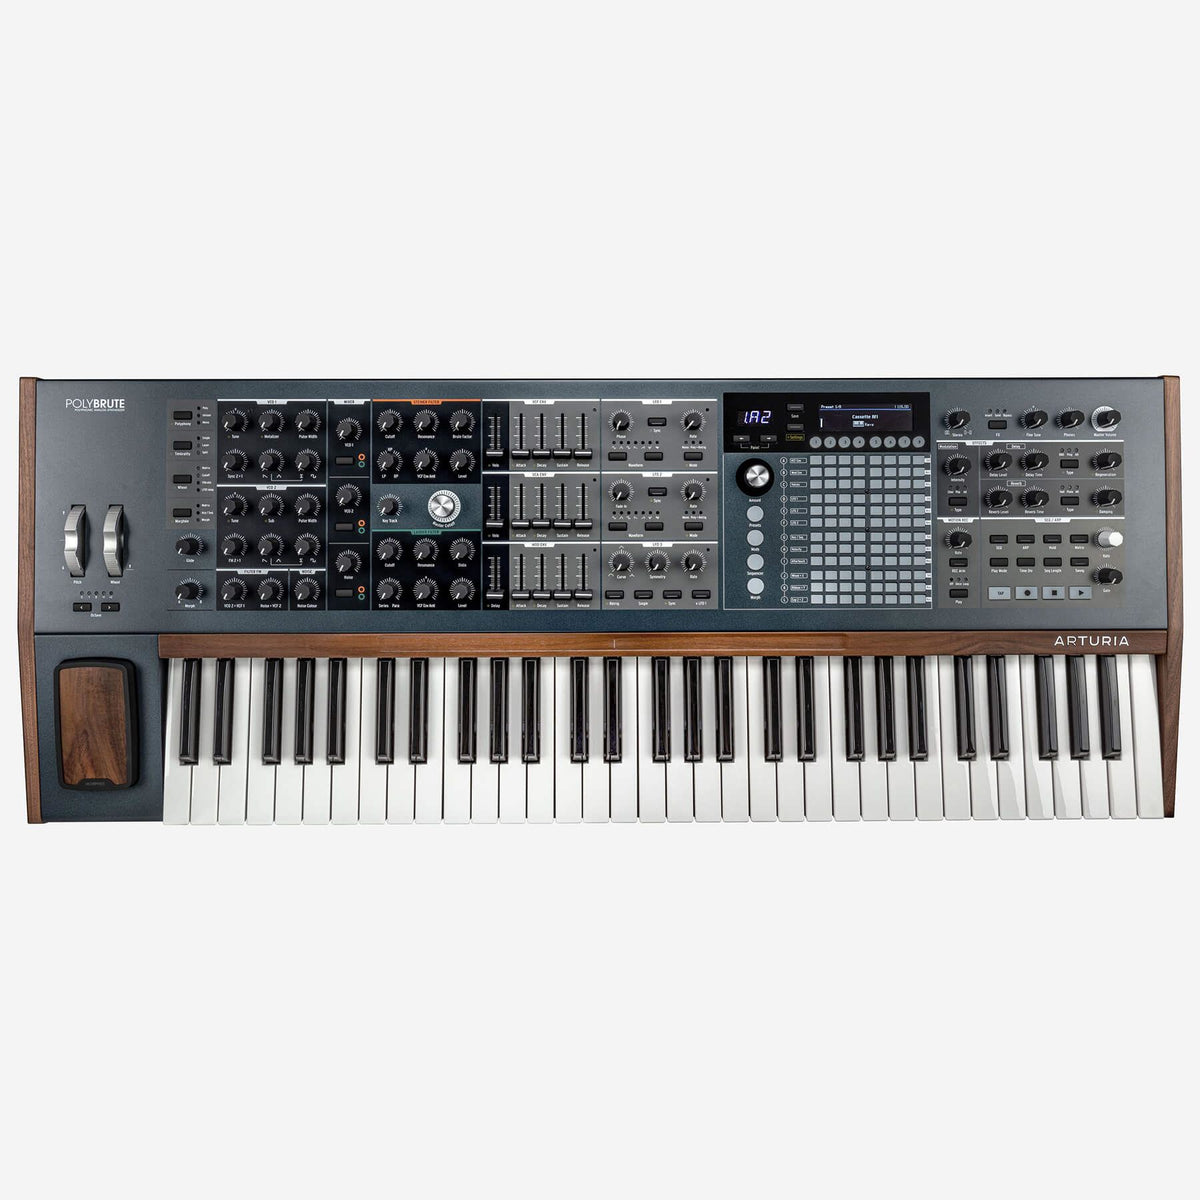 Arturia Polybrute Analog Matrix Synthesizer